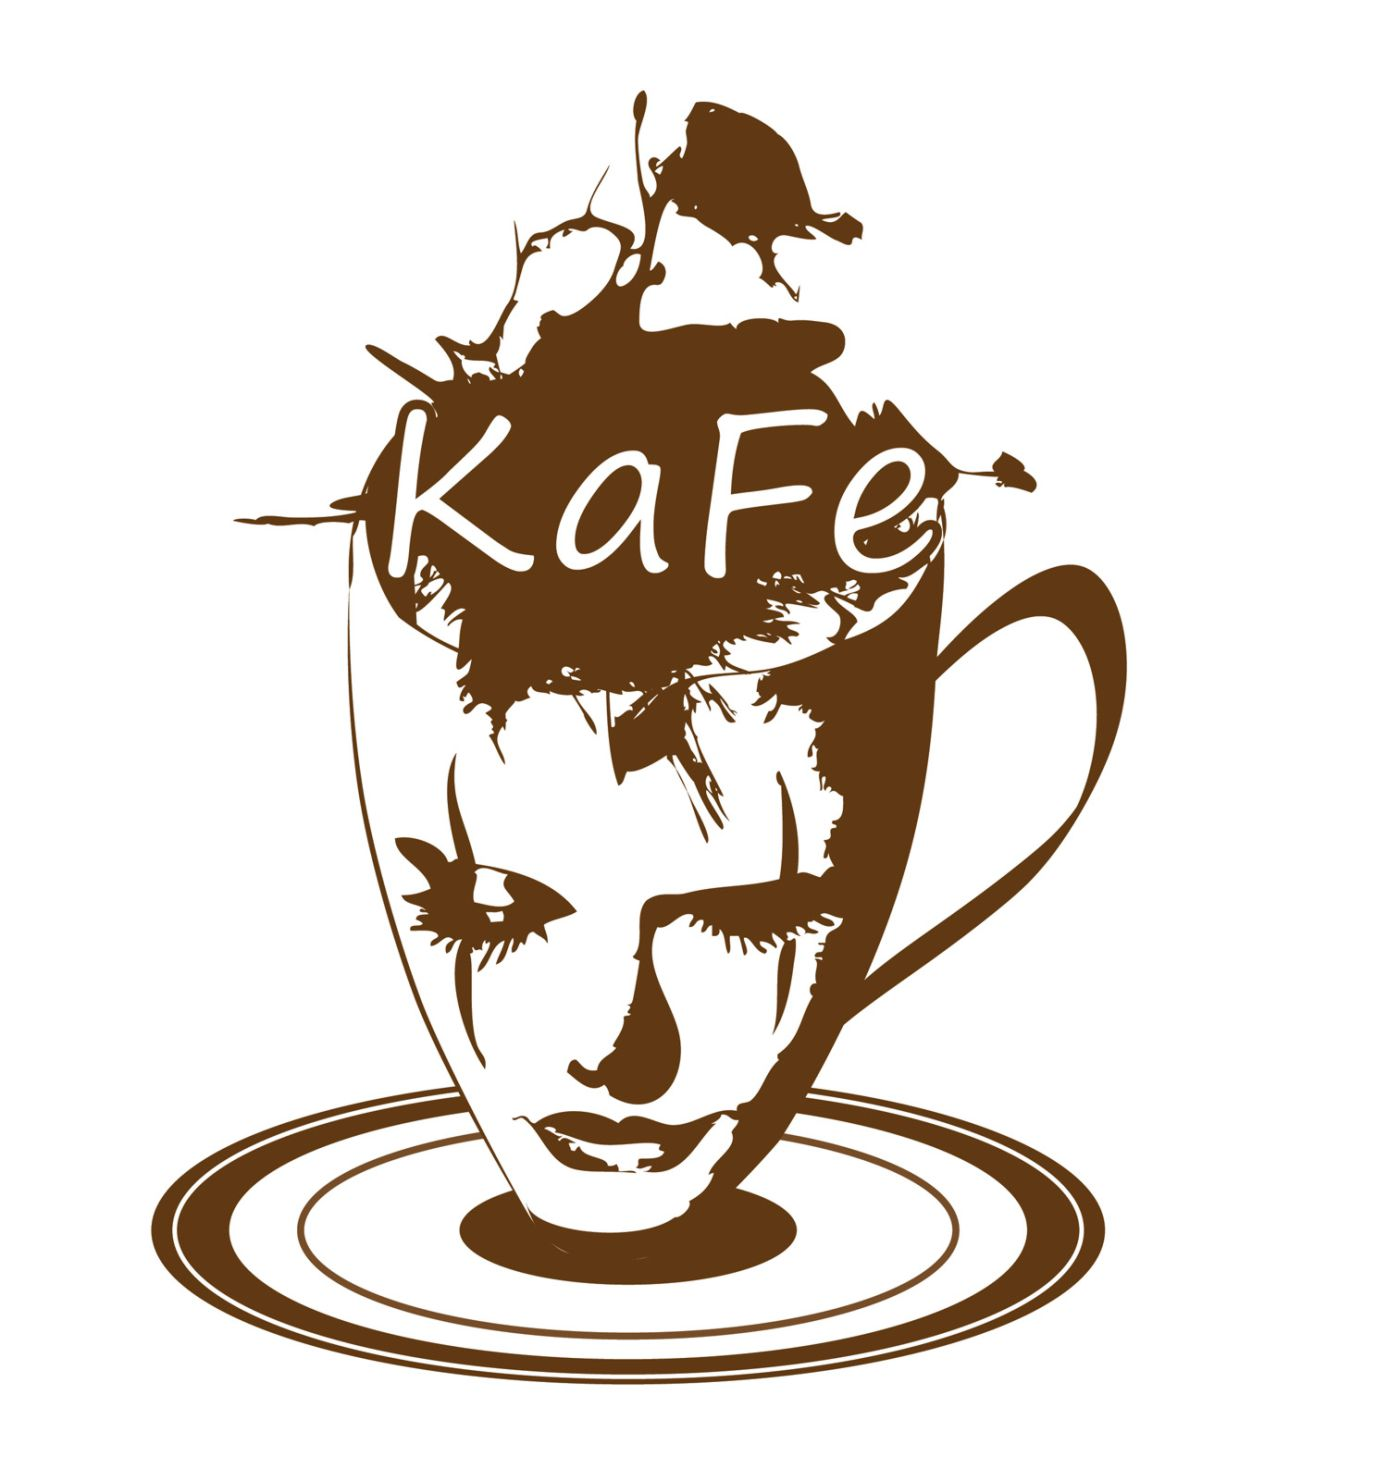 kafe log uni